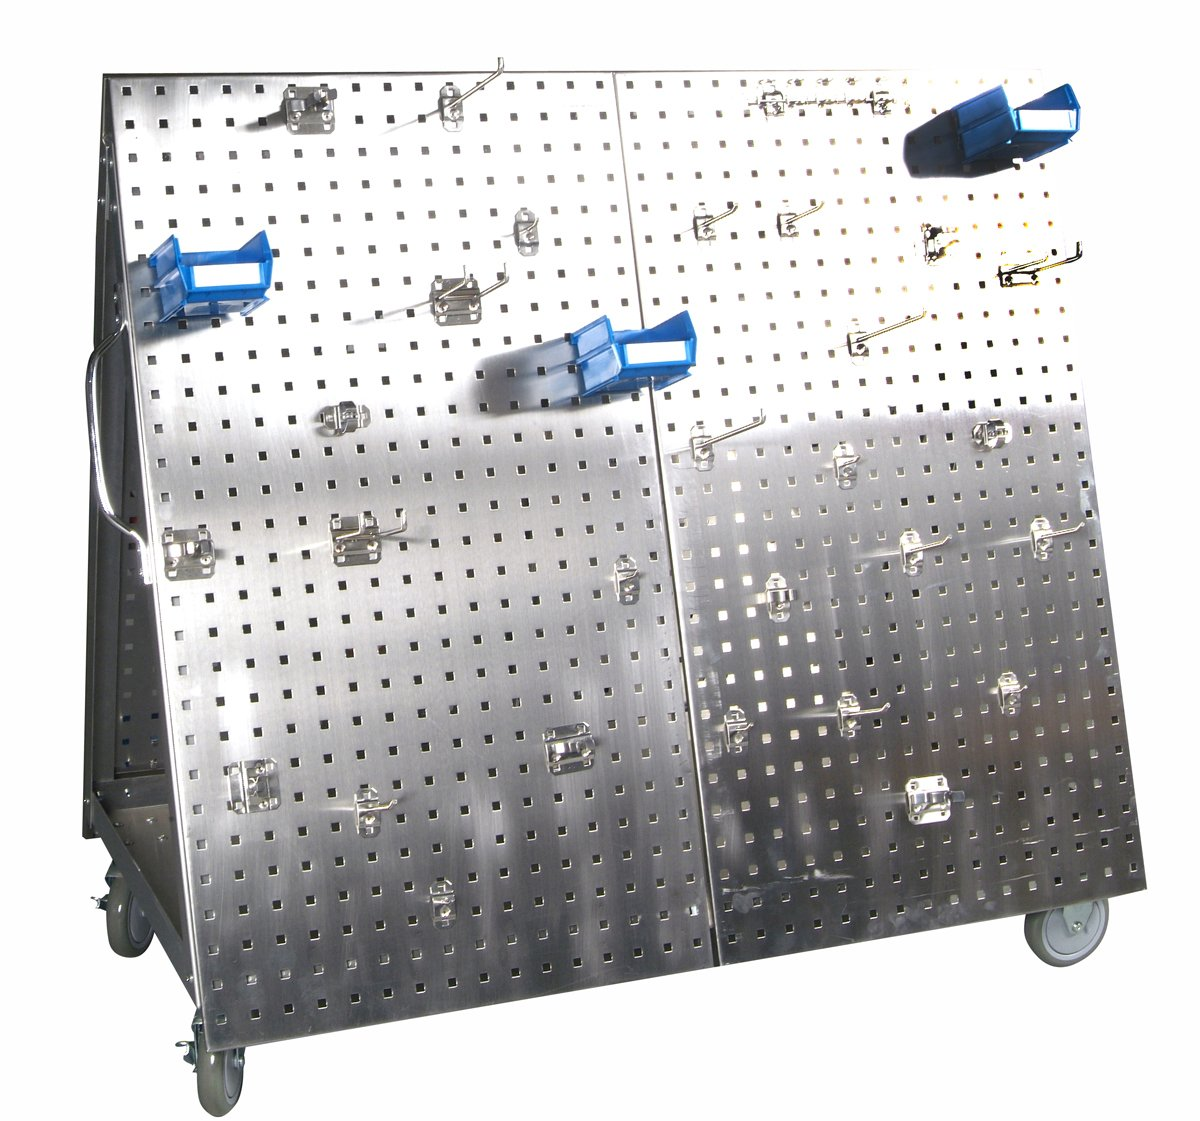 Triton Products Locking Pegboard Hooks LBC-4SH Anodized Aluminum Frame SS LocBoard Tool Cart with Tray, 66 Piece Stainless Steel LocHook Assortment & 6 Hanging Bins, 48'' x 46'' x 26-5/8'', Silver by Locking Pegboard Hooks